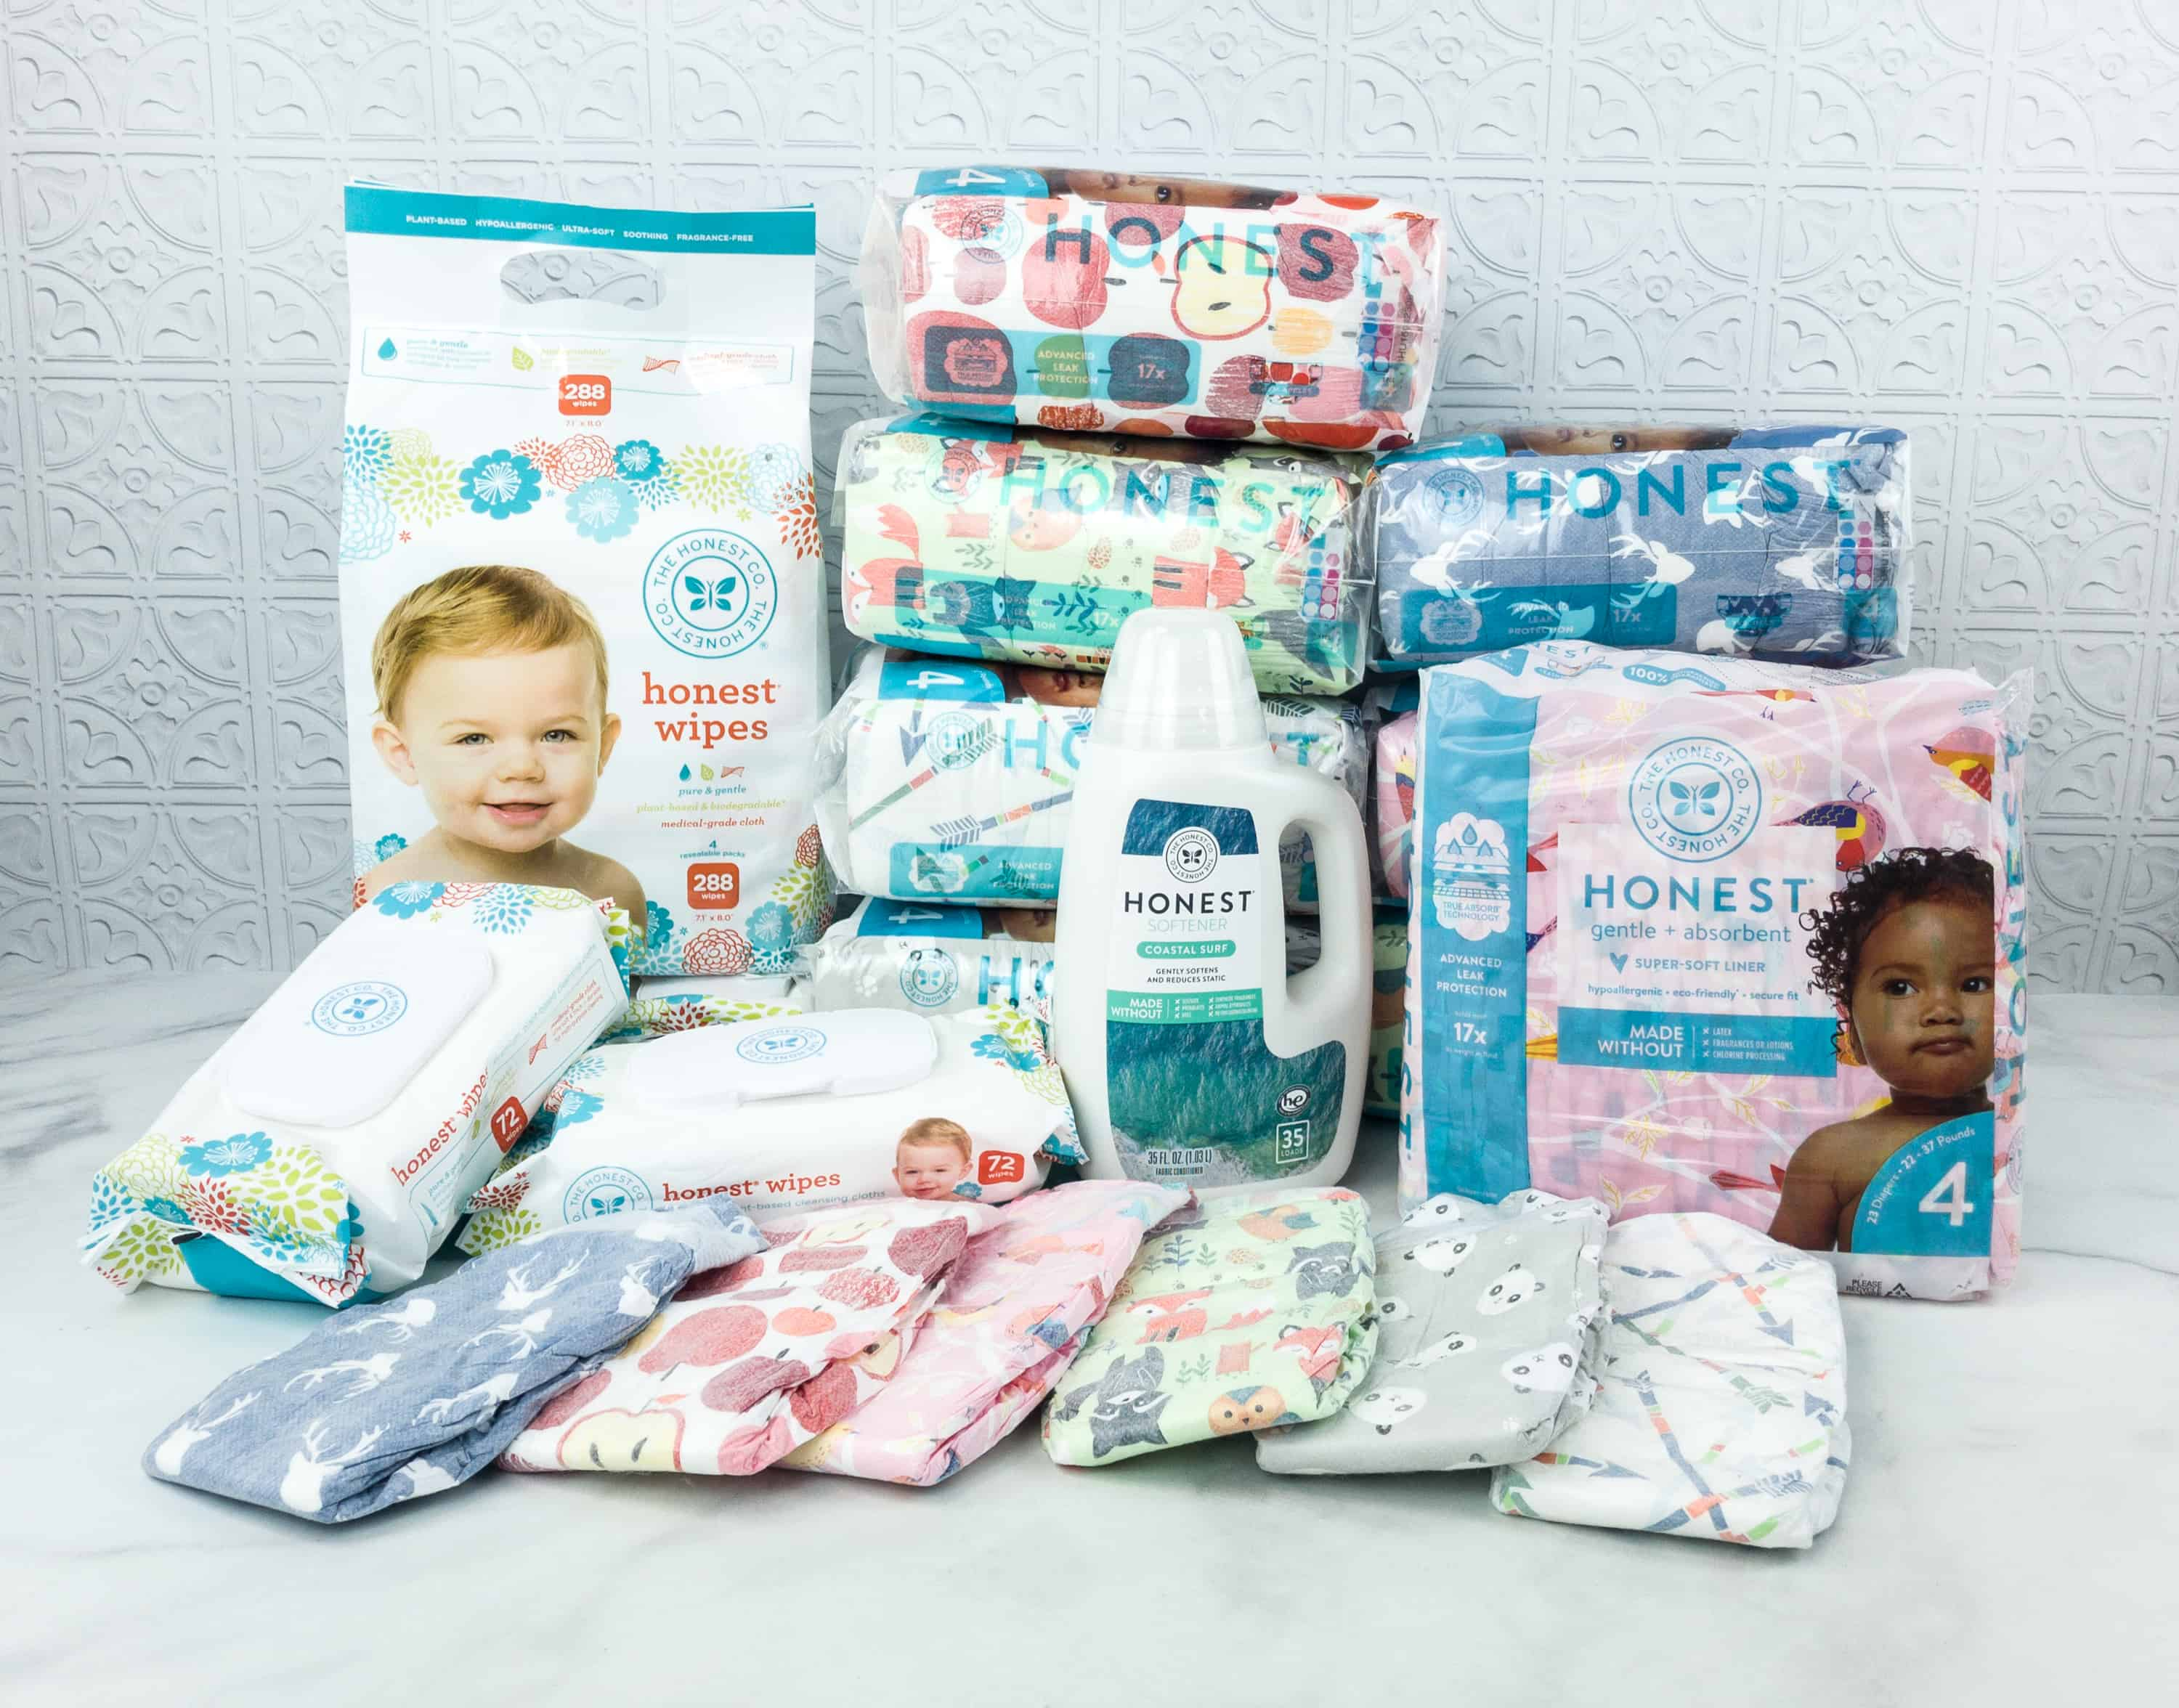 Honest Company Black Friday 2018 Coupon: 40% Off Diapers + Wipes Bundles for New Members!